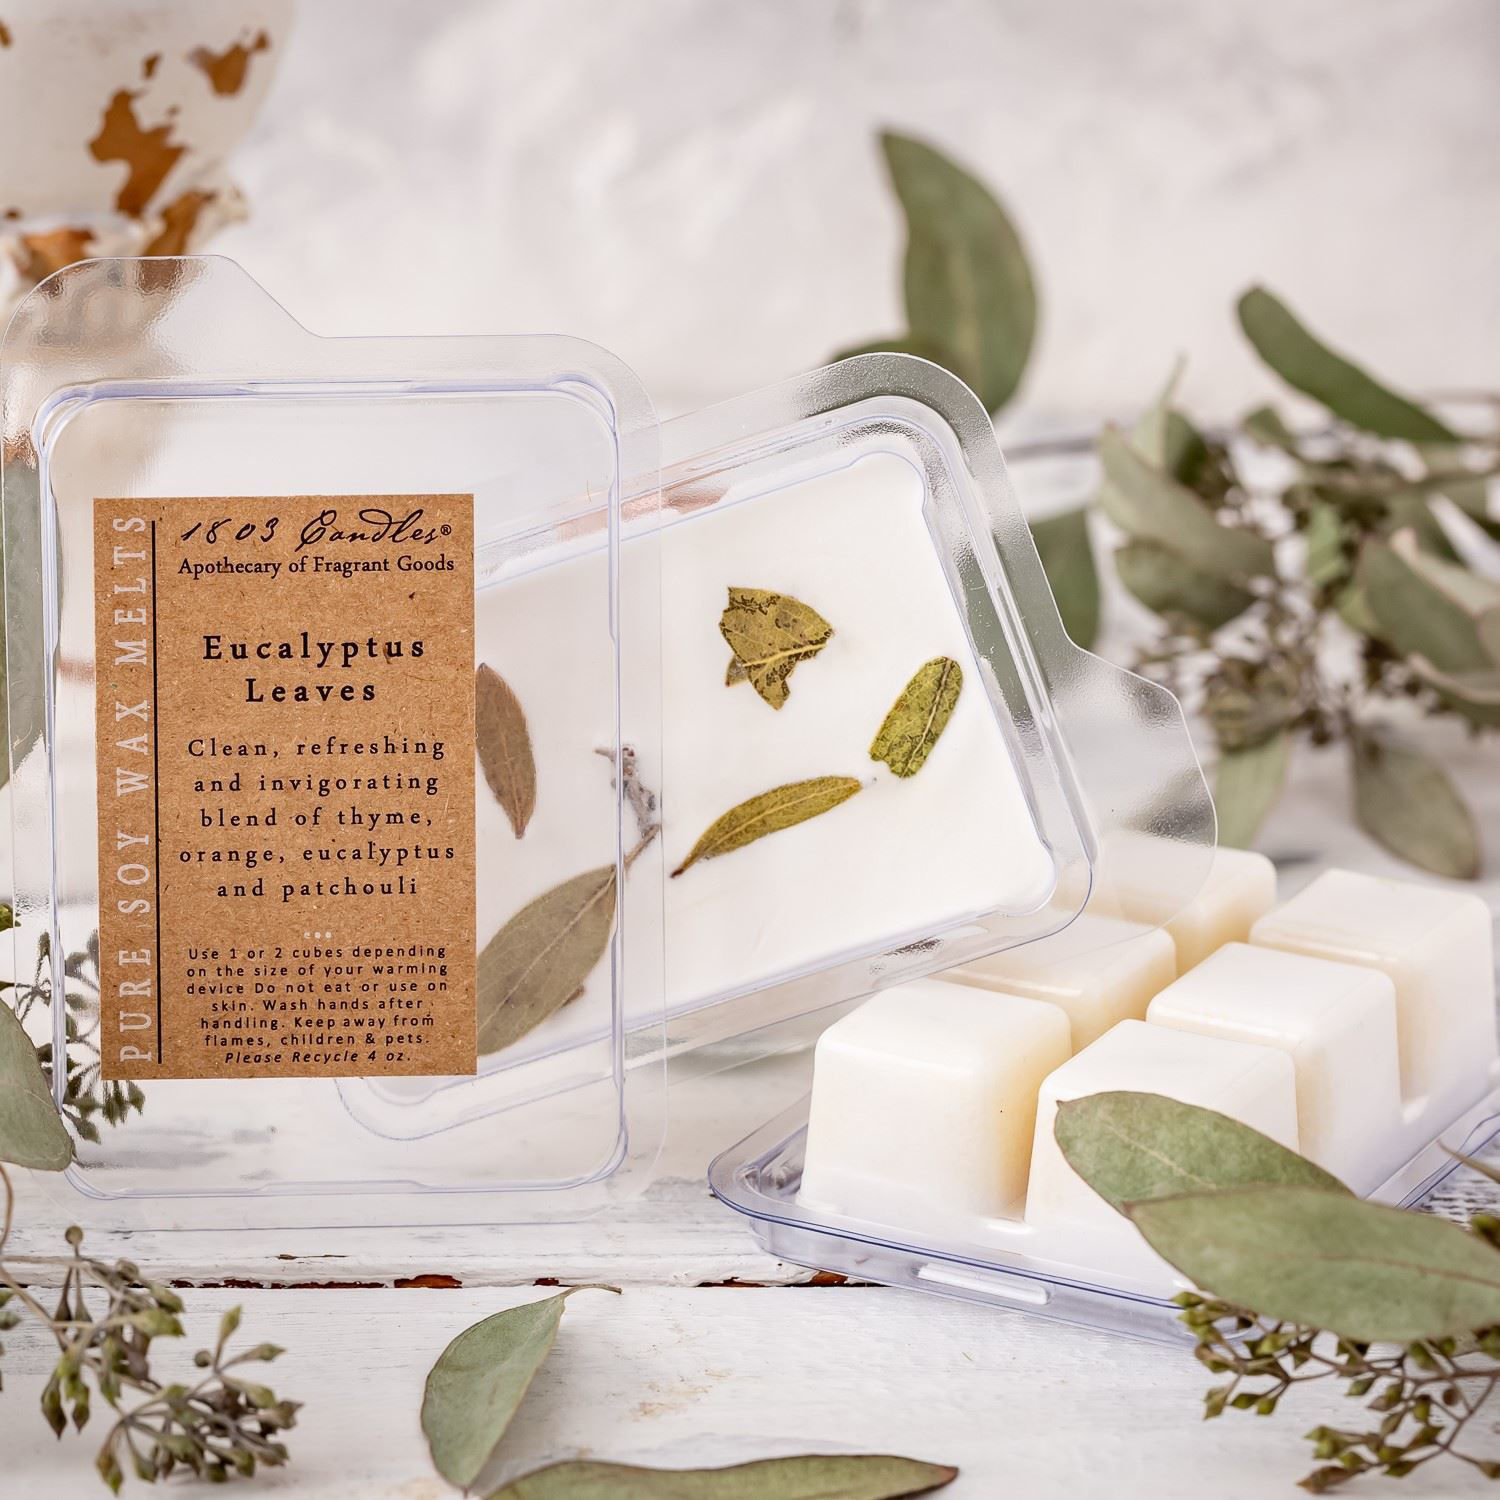 Eucalyptus Leaves Melters by 1803 Candles